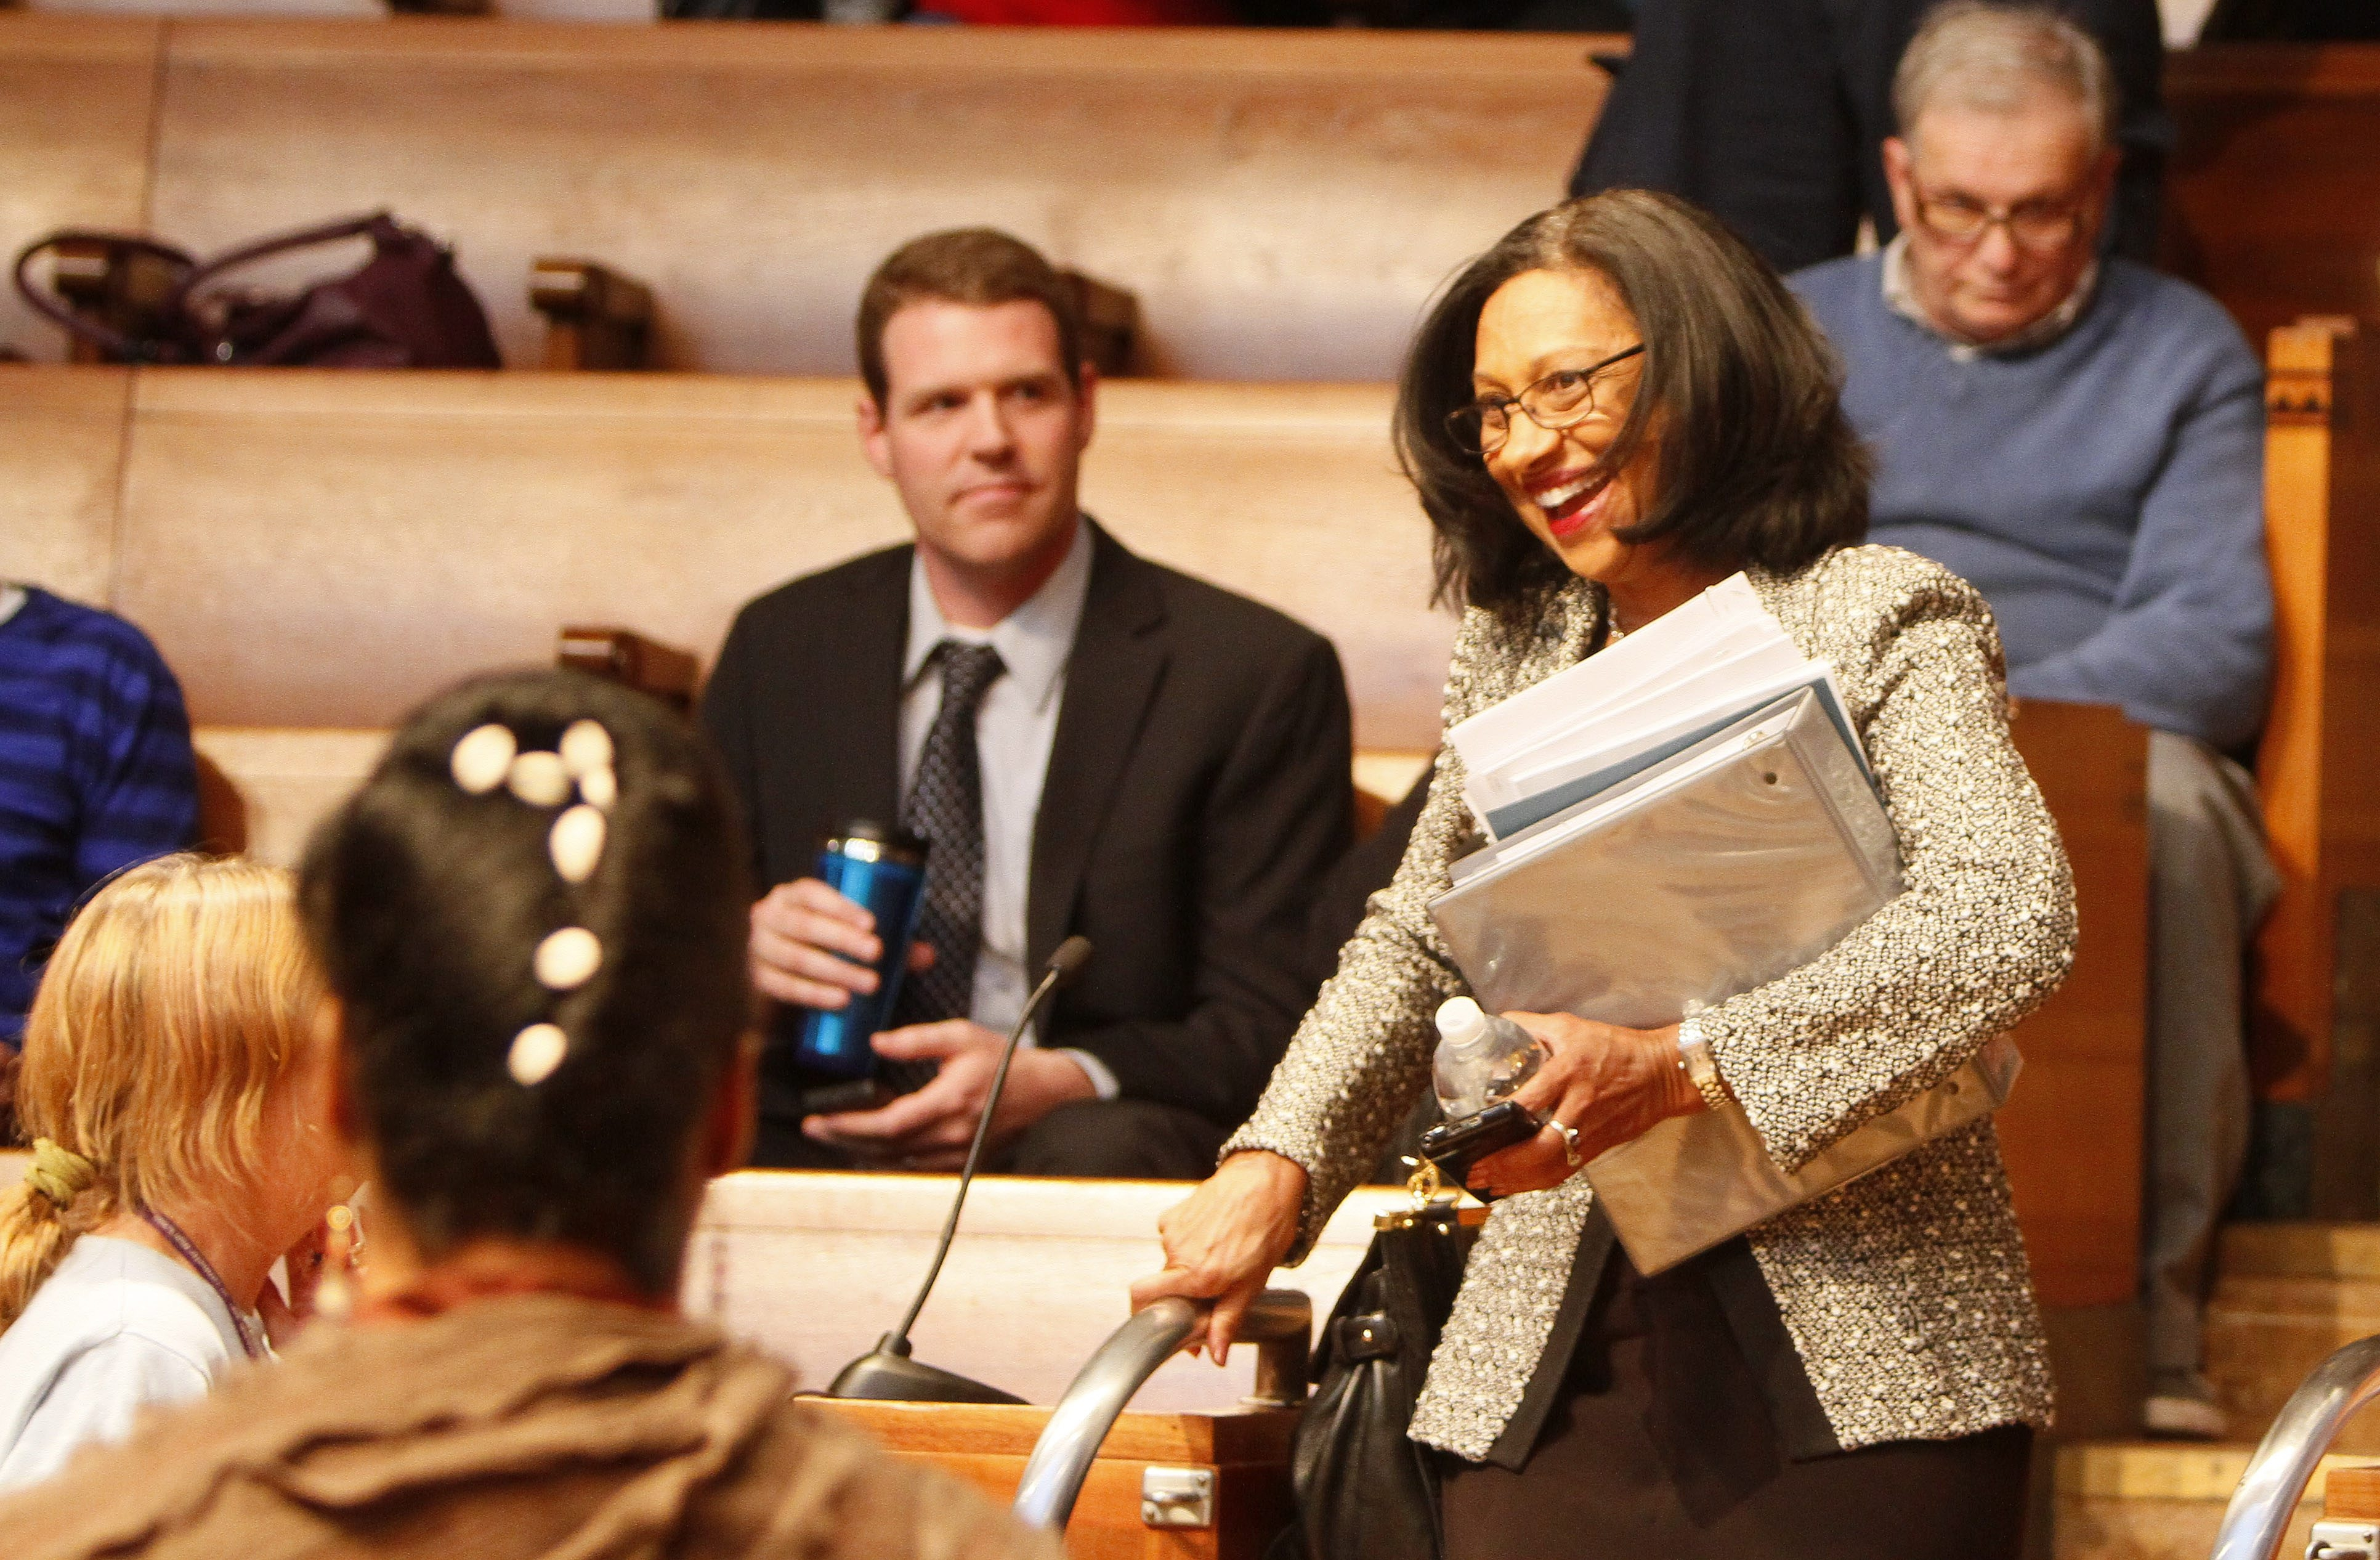 Buffalo Public Schools Superintendent Dr. Pamela Brown enters the council chambers to the applause of supporters before the board meeting at Buffalo City Hall Wednesday.